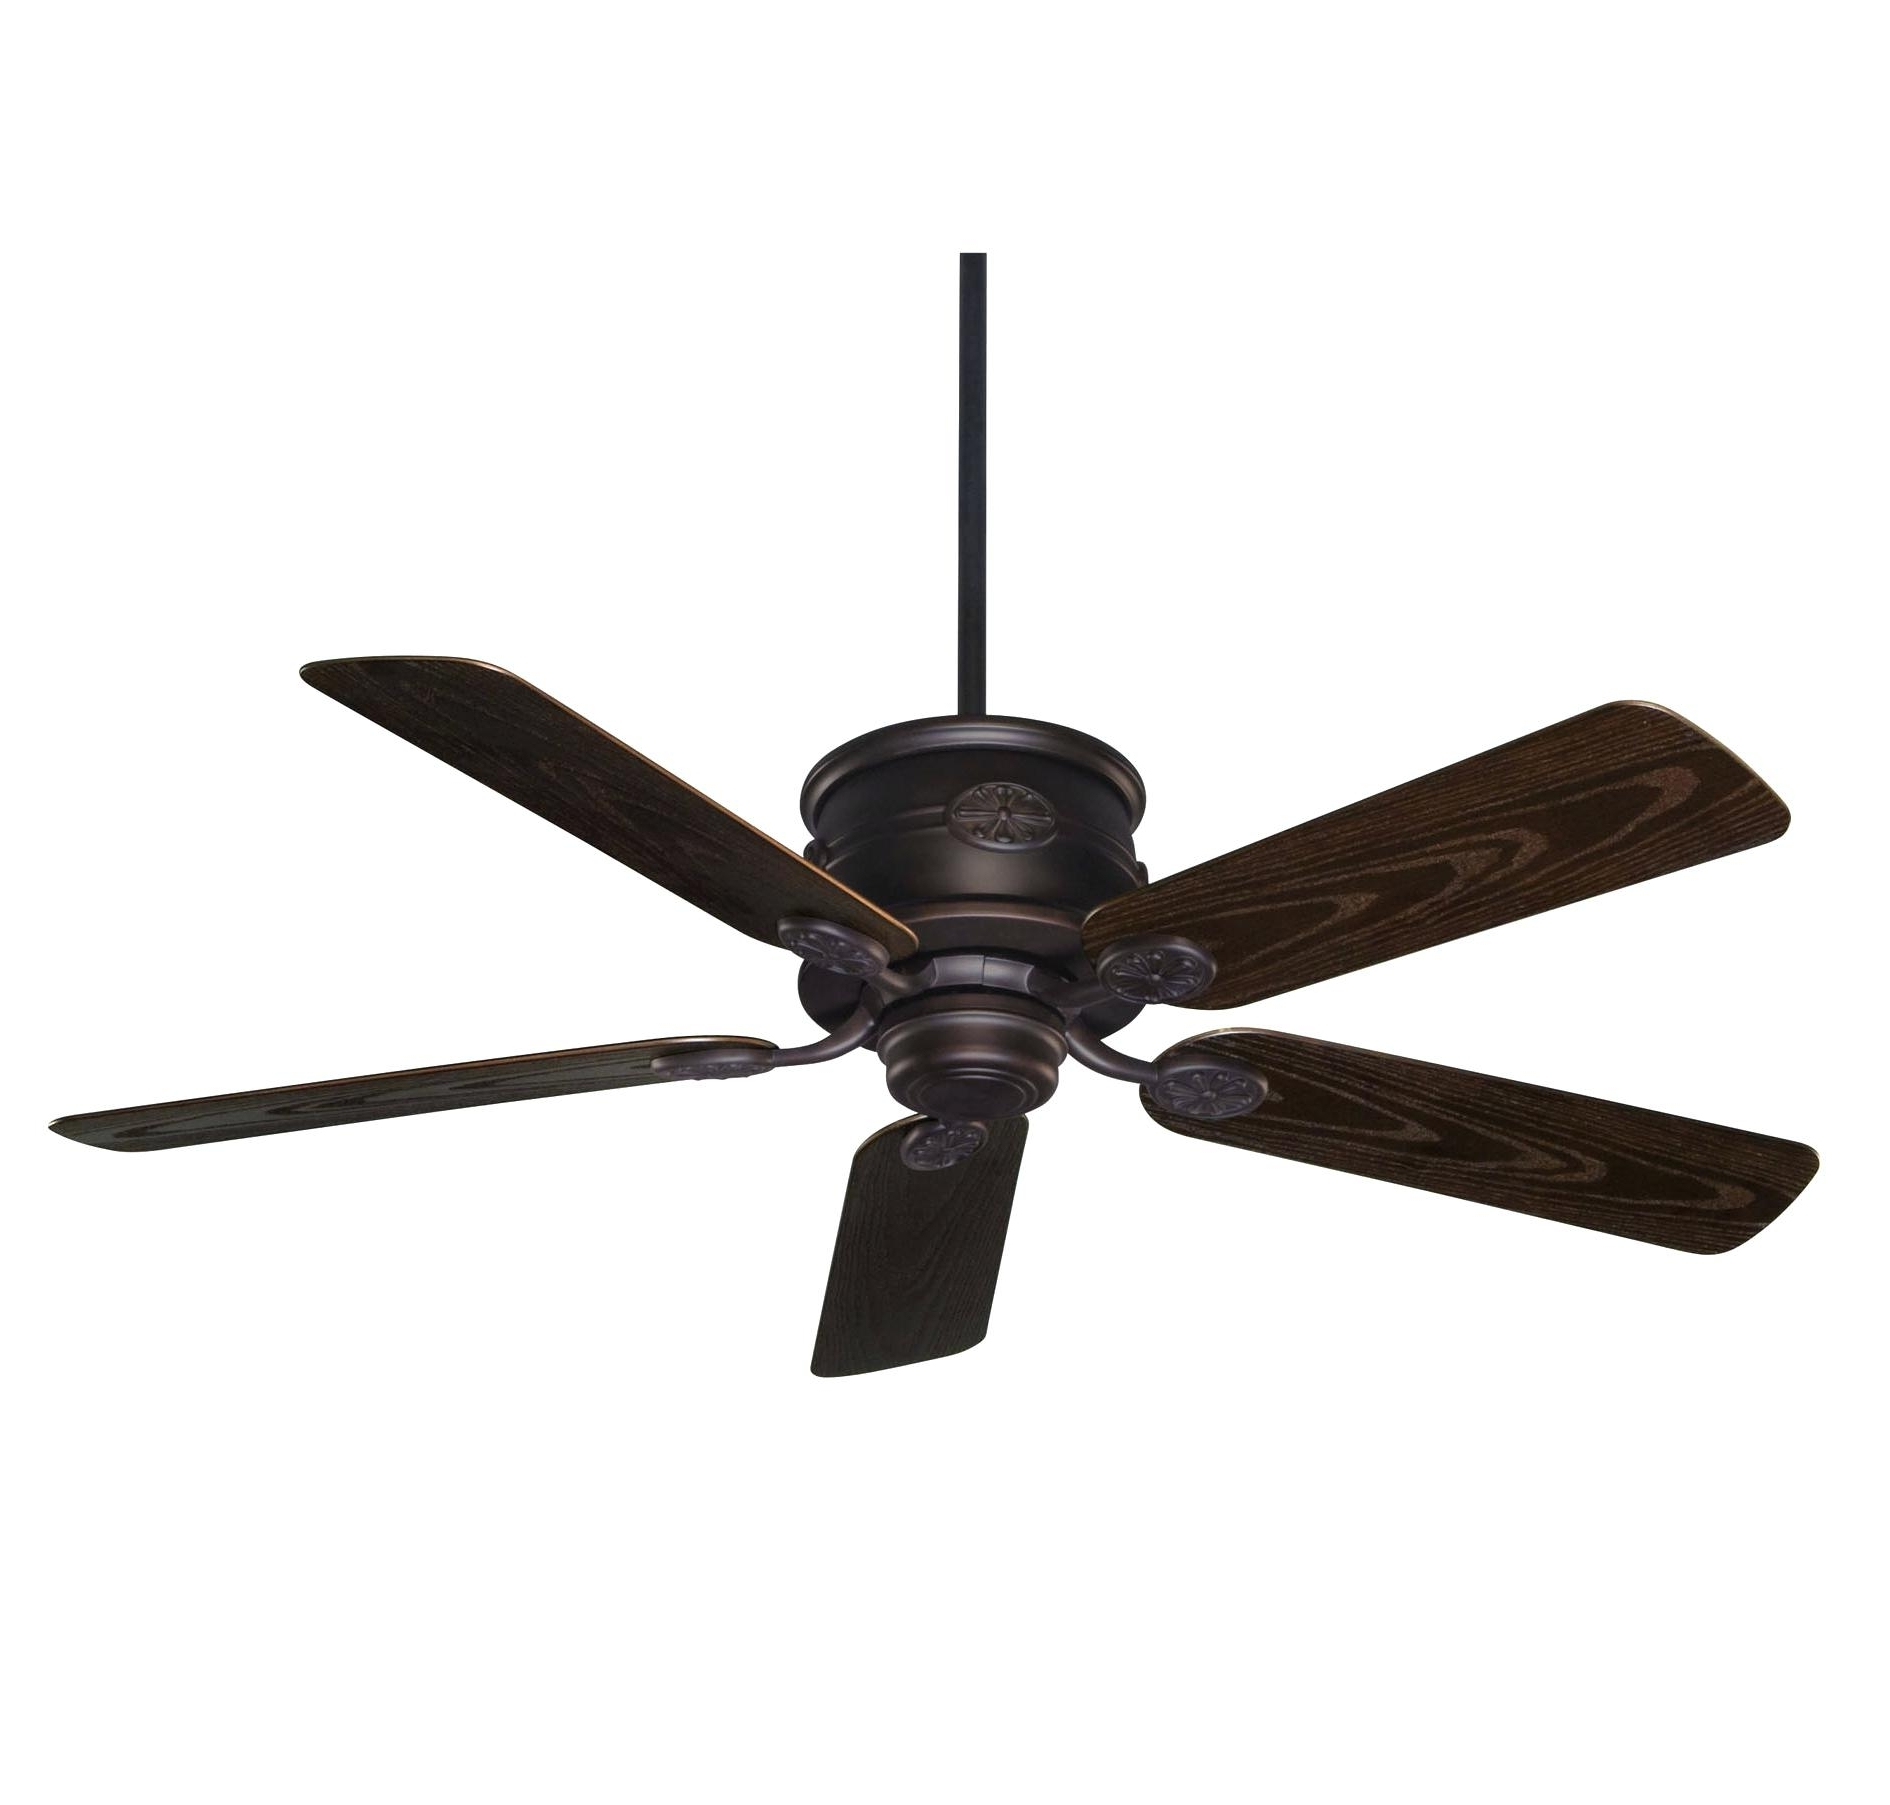 Widely Used Wayfair Outdoor Ceiling Fans Throughout Wayfair Ceiling Fans S Fan Lights With Remote Hugger (View 5 of 20)